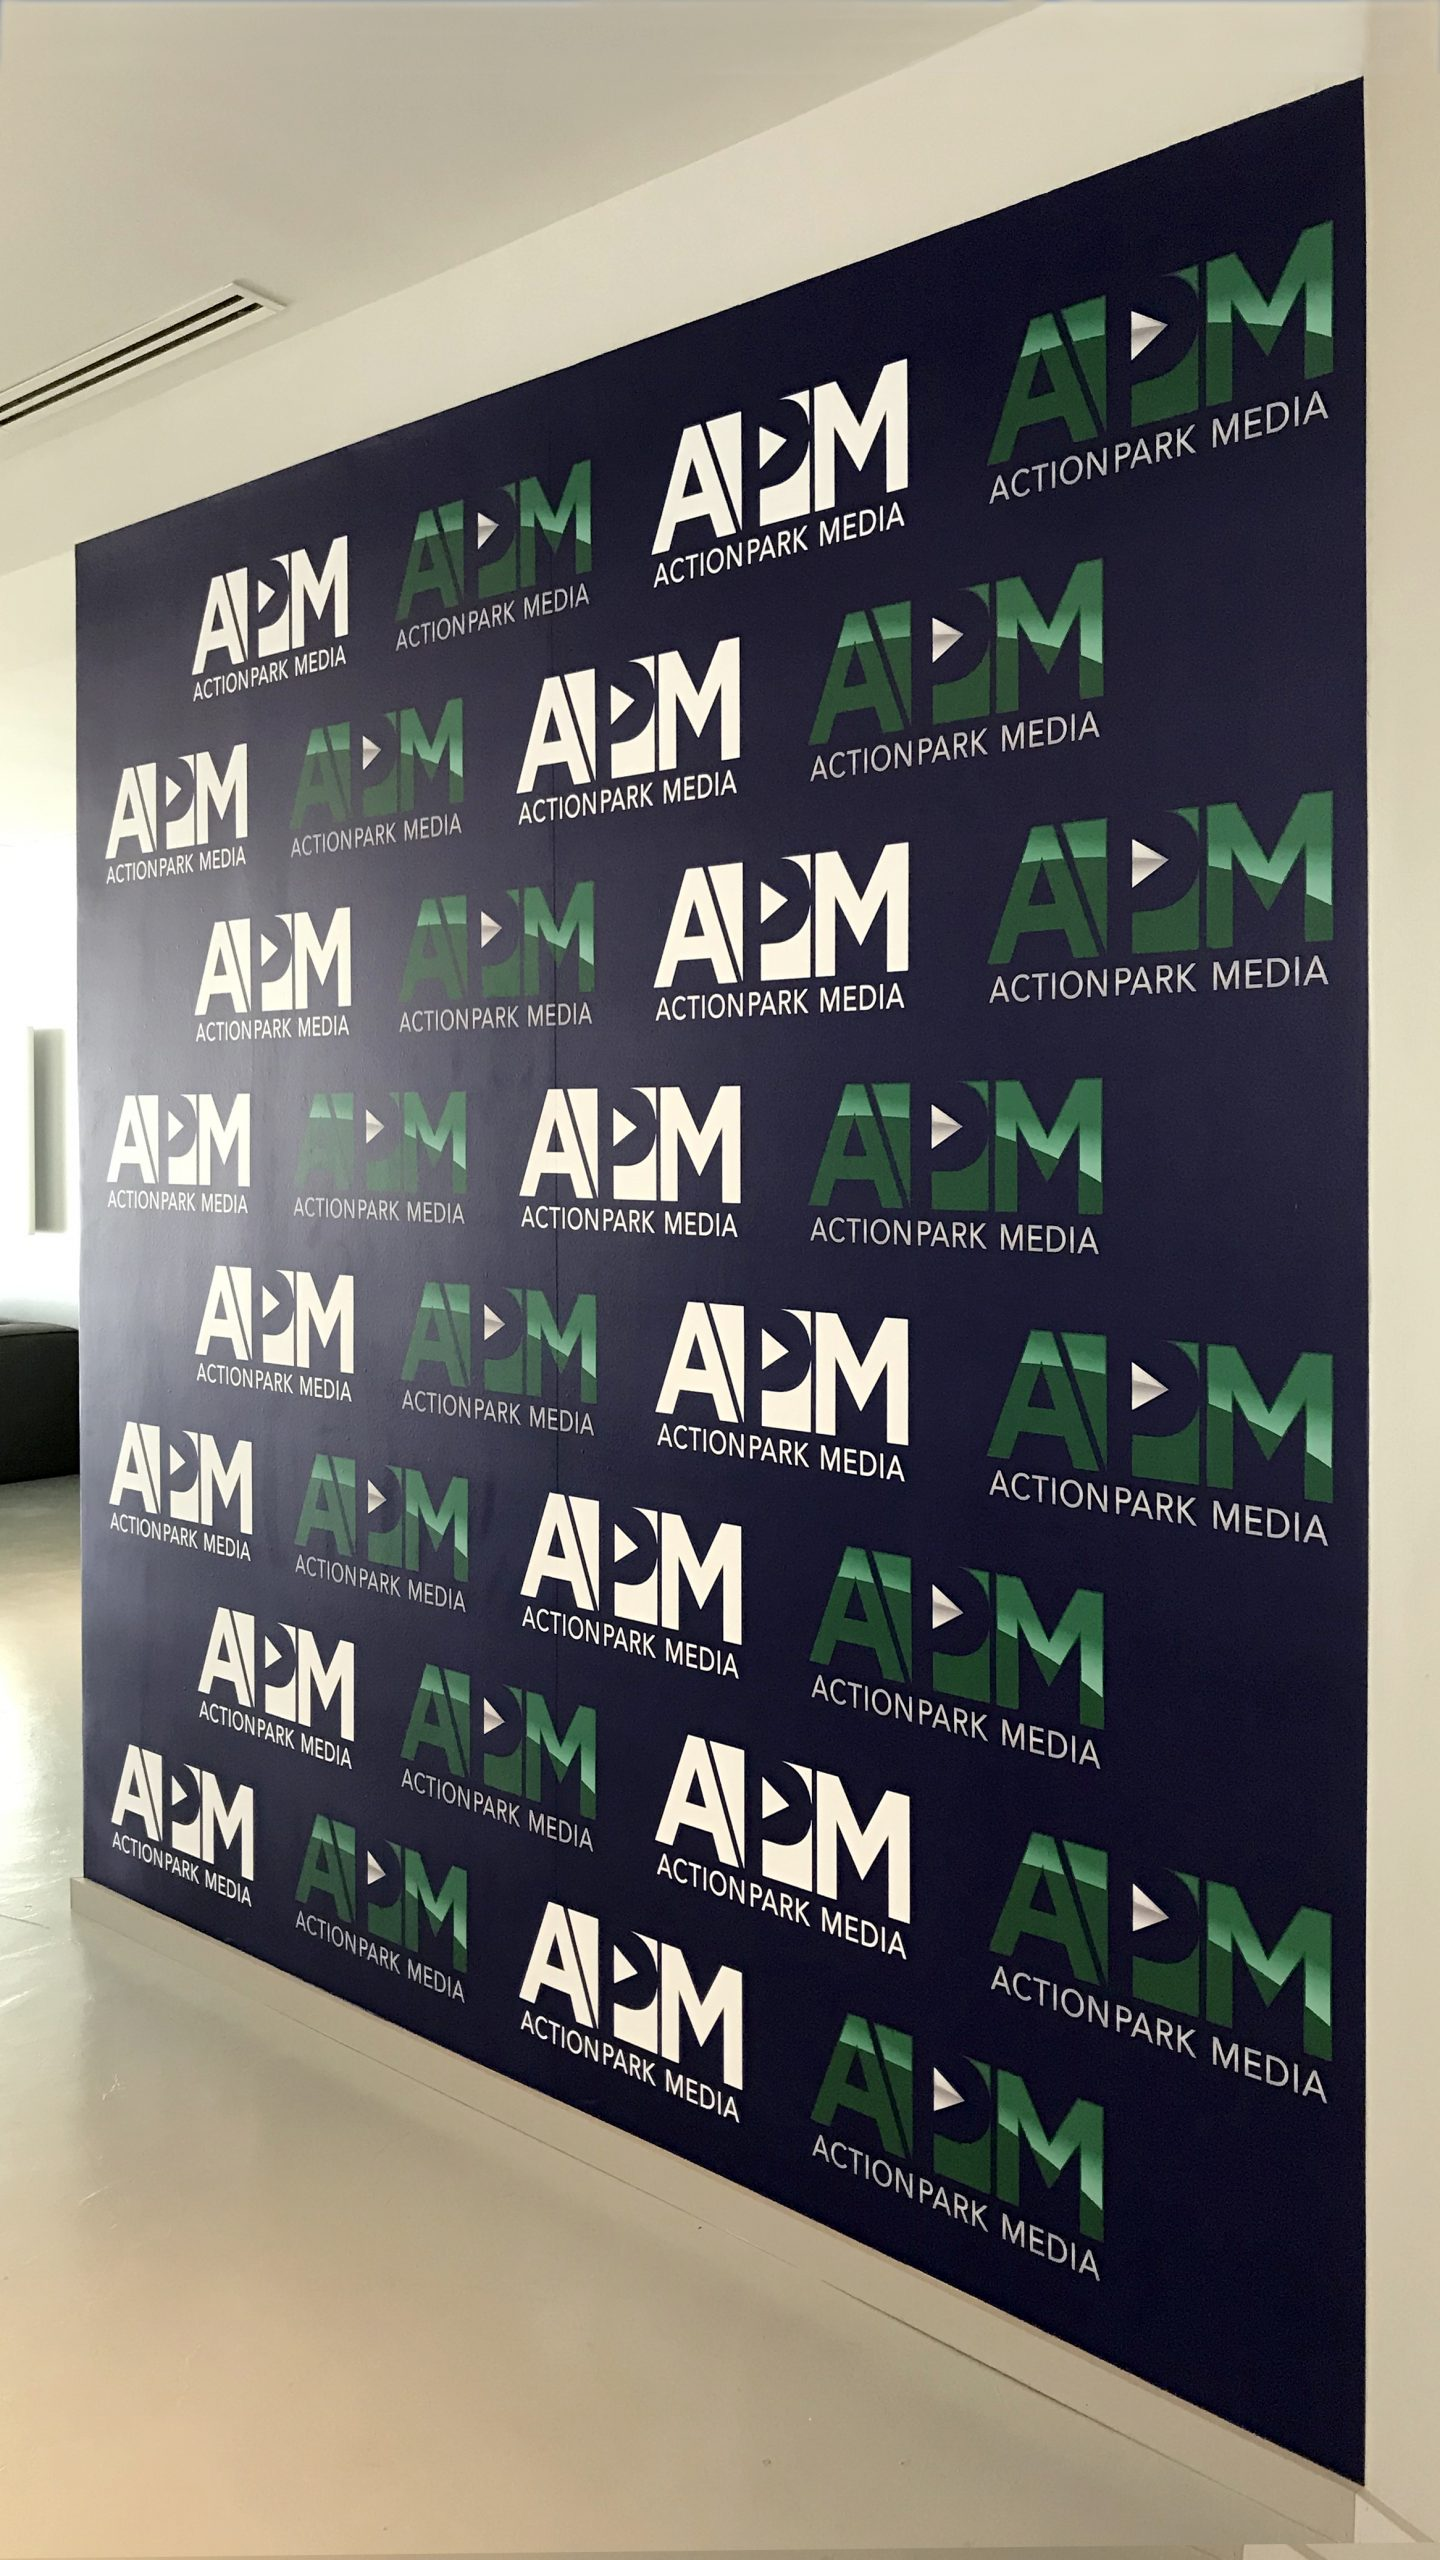 Actionpark media wall decals